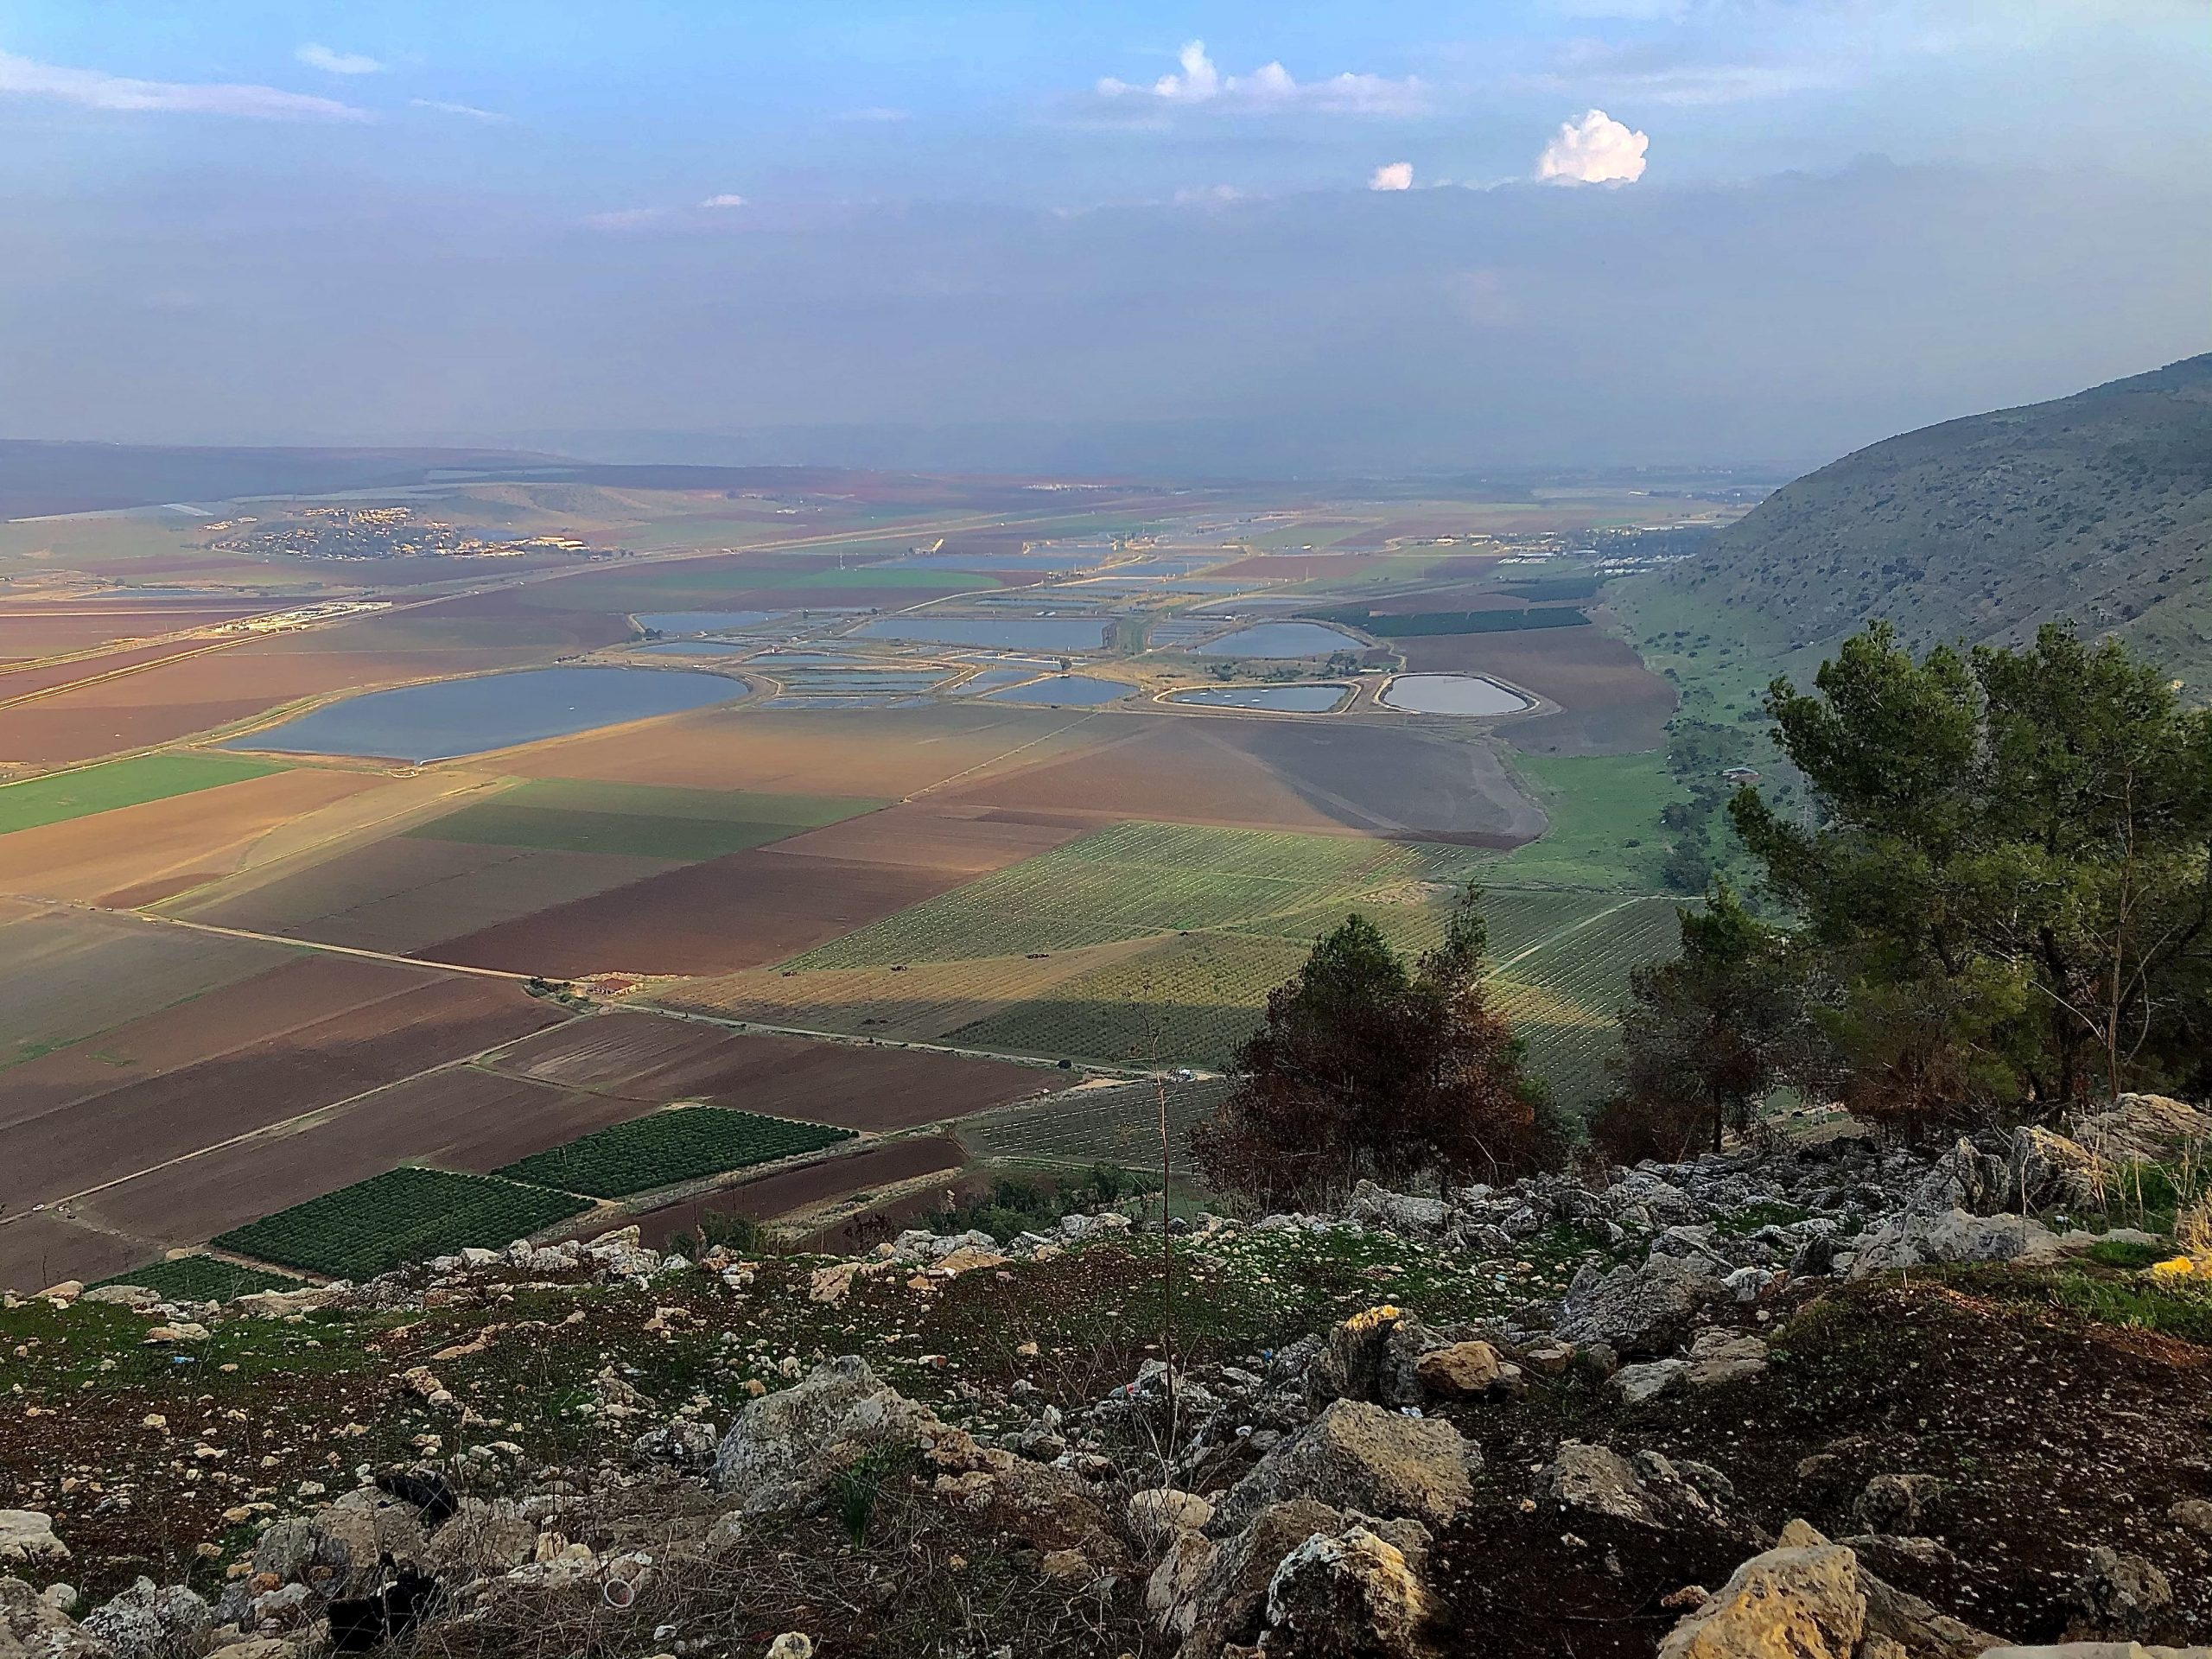 View from Mount Gilboa on Jezreel Valley